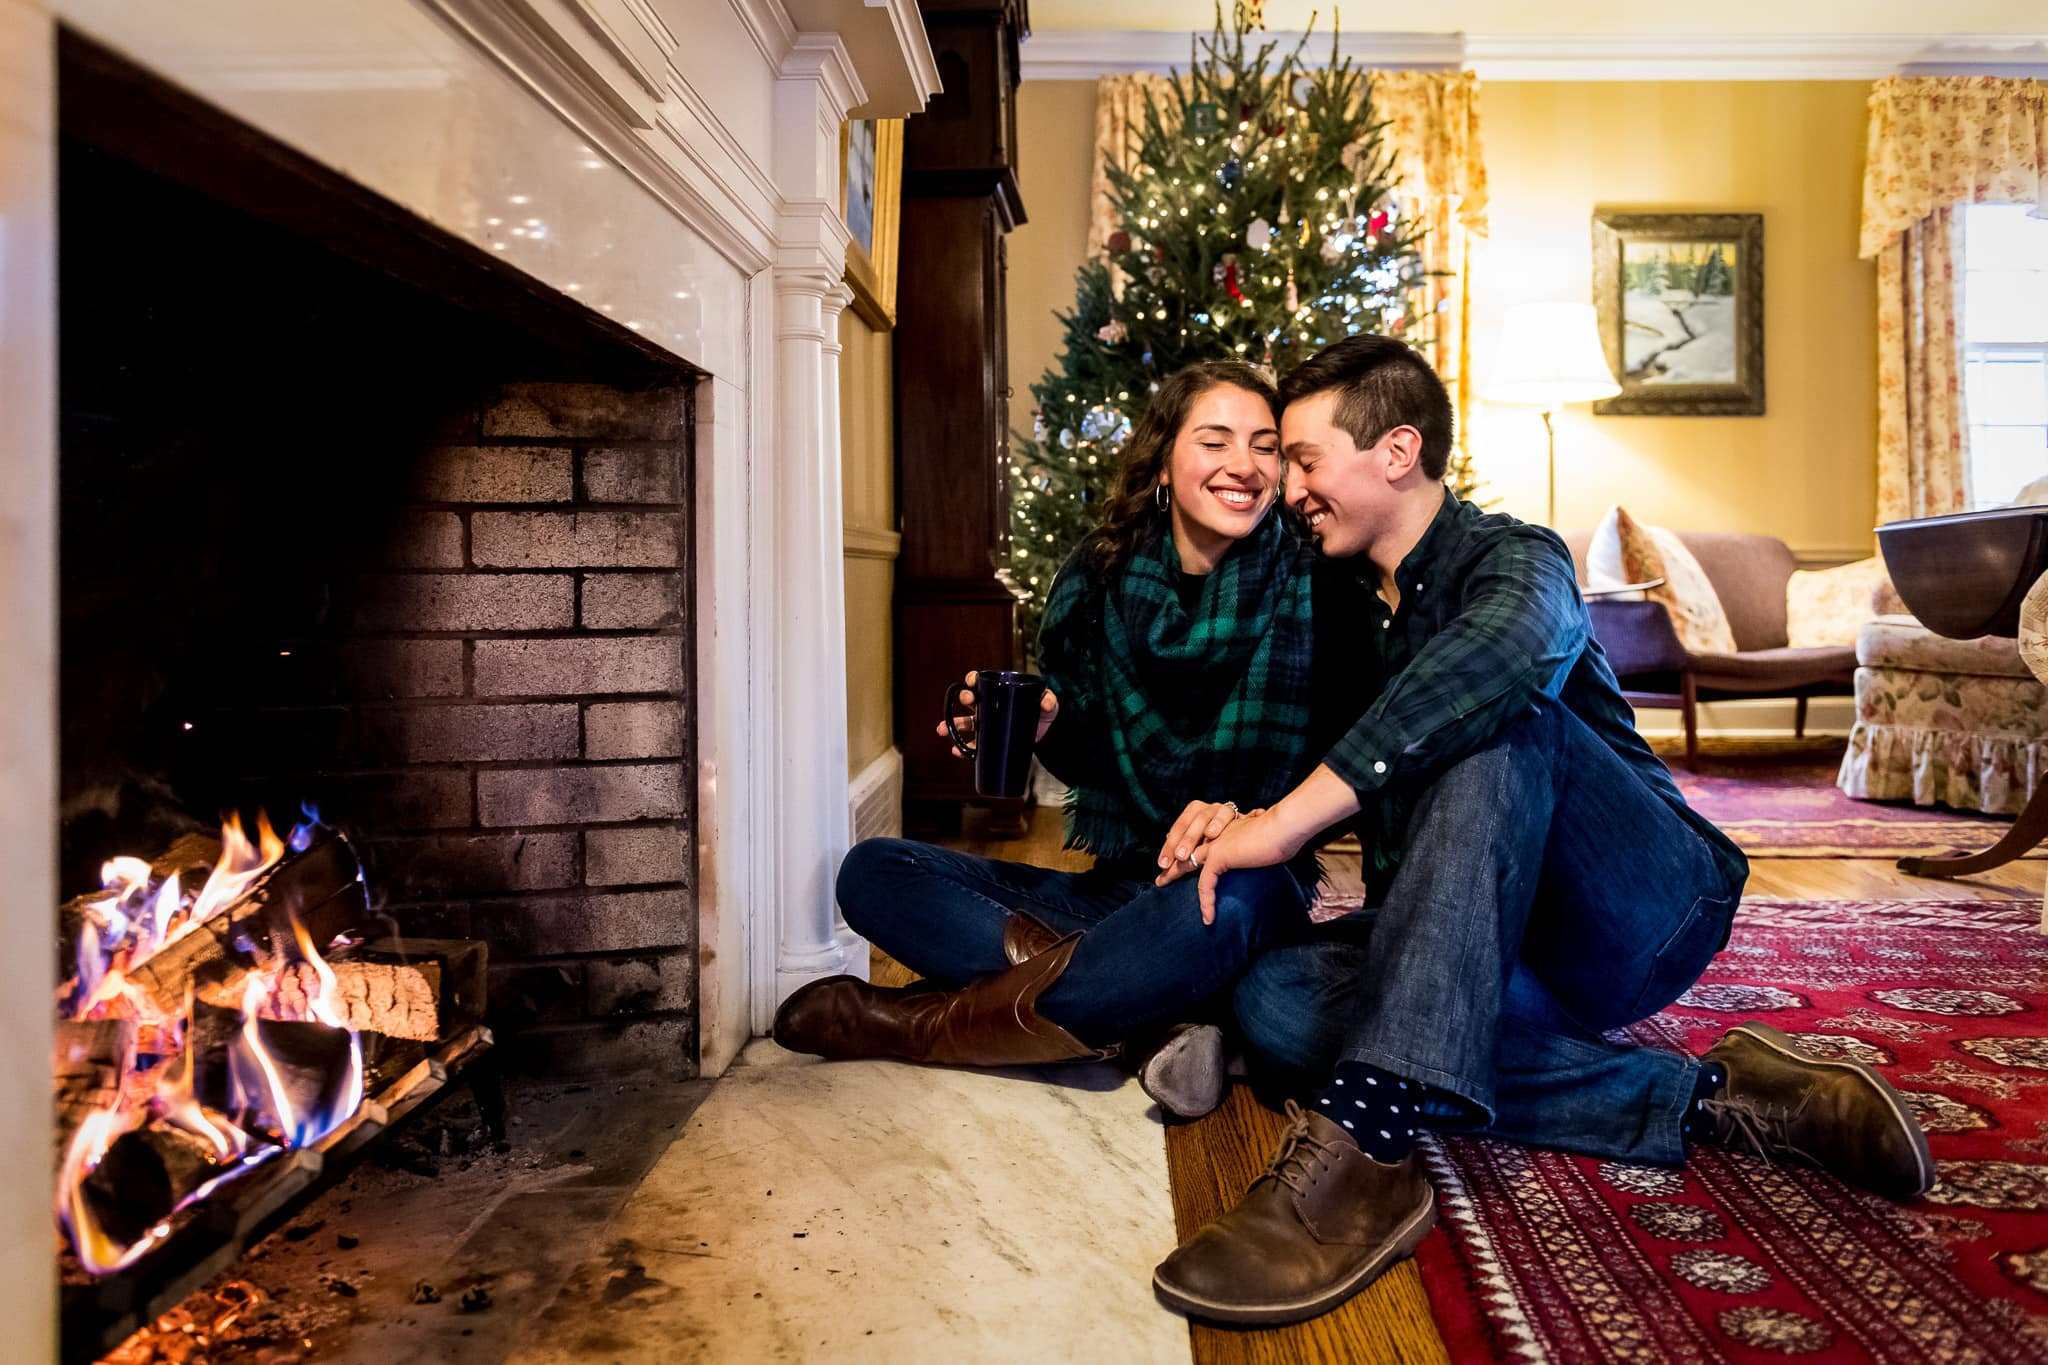 Engagement photo inside by the fireplace in the Knollwood neighborhood in Hopkins, MN